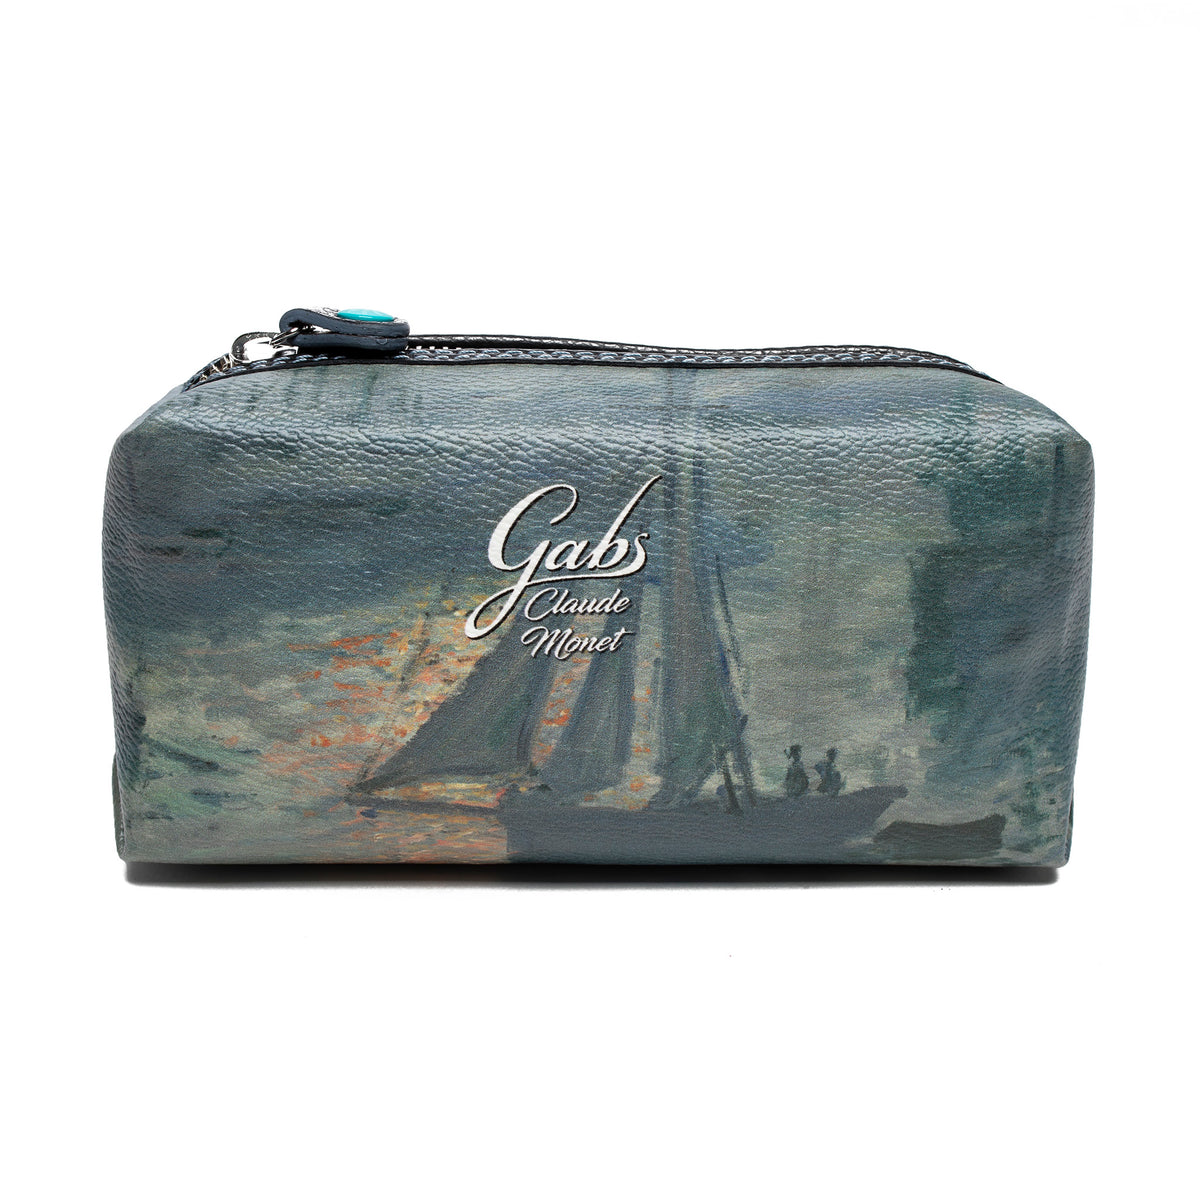 Cosmetics Bag featuring Monet's Sunrise (Marine) by Gabs, Italy